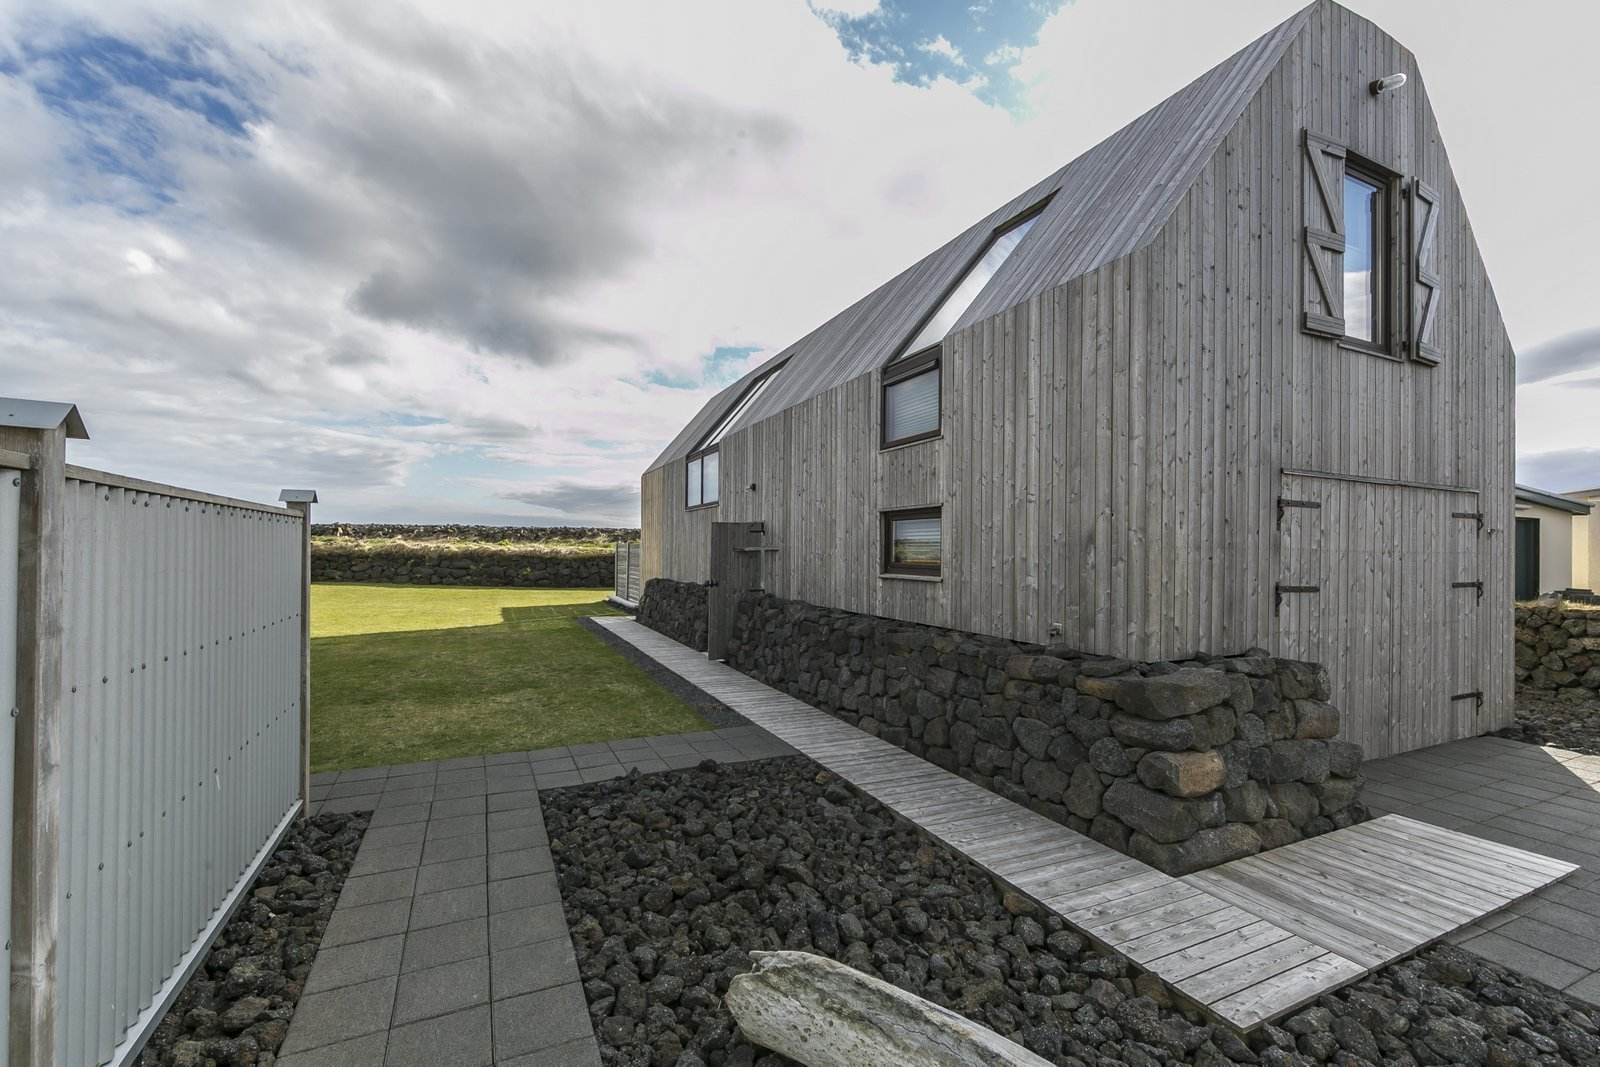 Outdoor, Side Yard, Grass, Walkways, Wood, Hardscapes, Concrete, Vertical, and Metal  Outdoor Side Yard Concrete Wood Metal Photos from Get in Touch With Iceland's Rugged Landscape While Staying at This Modern Coastal Barn